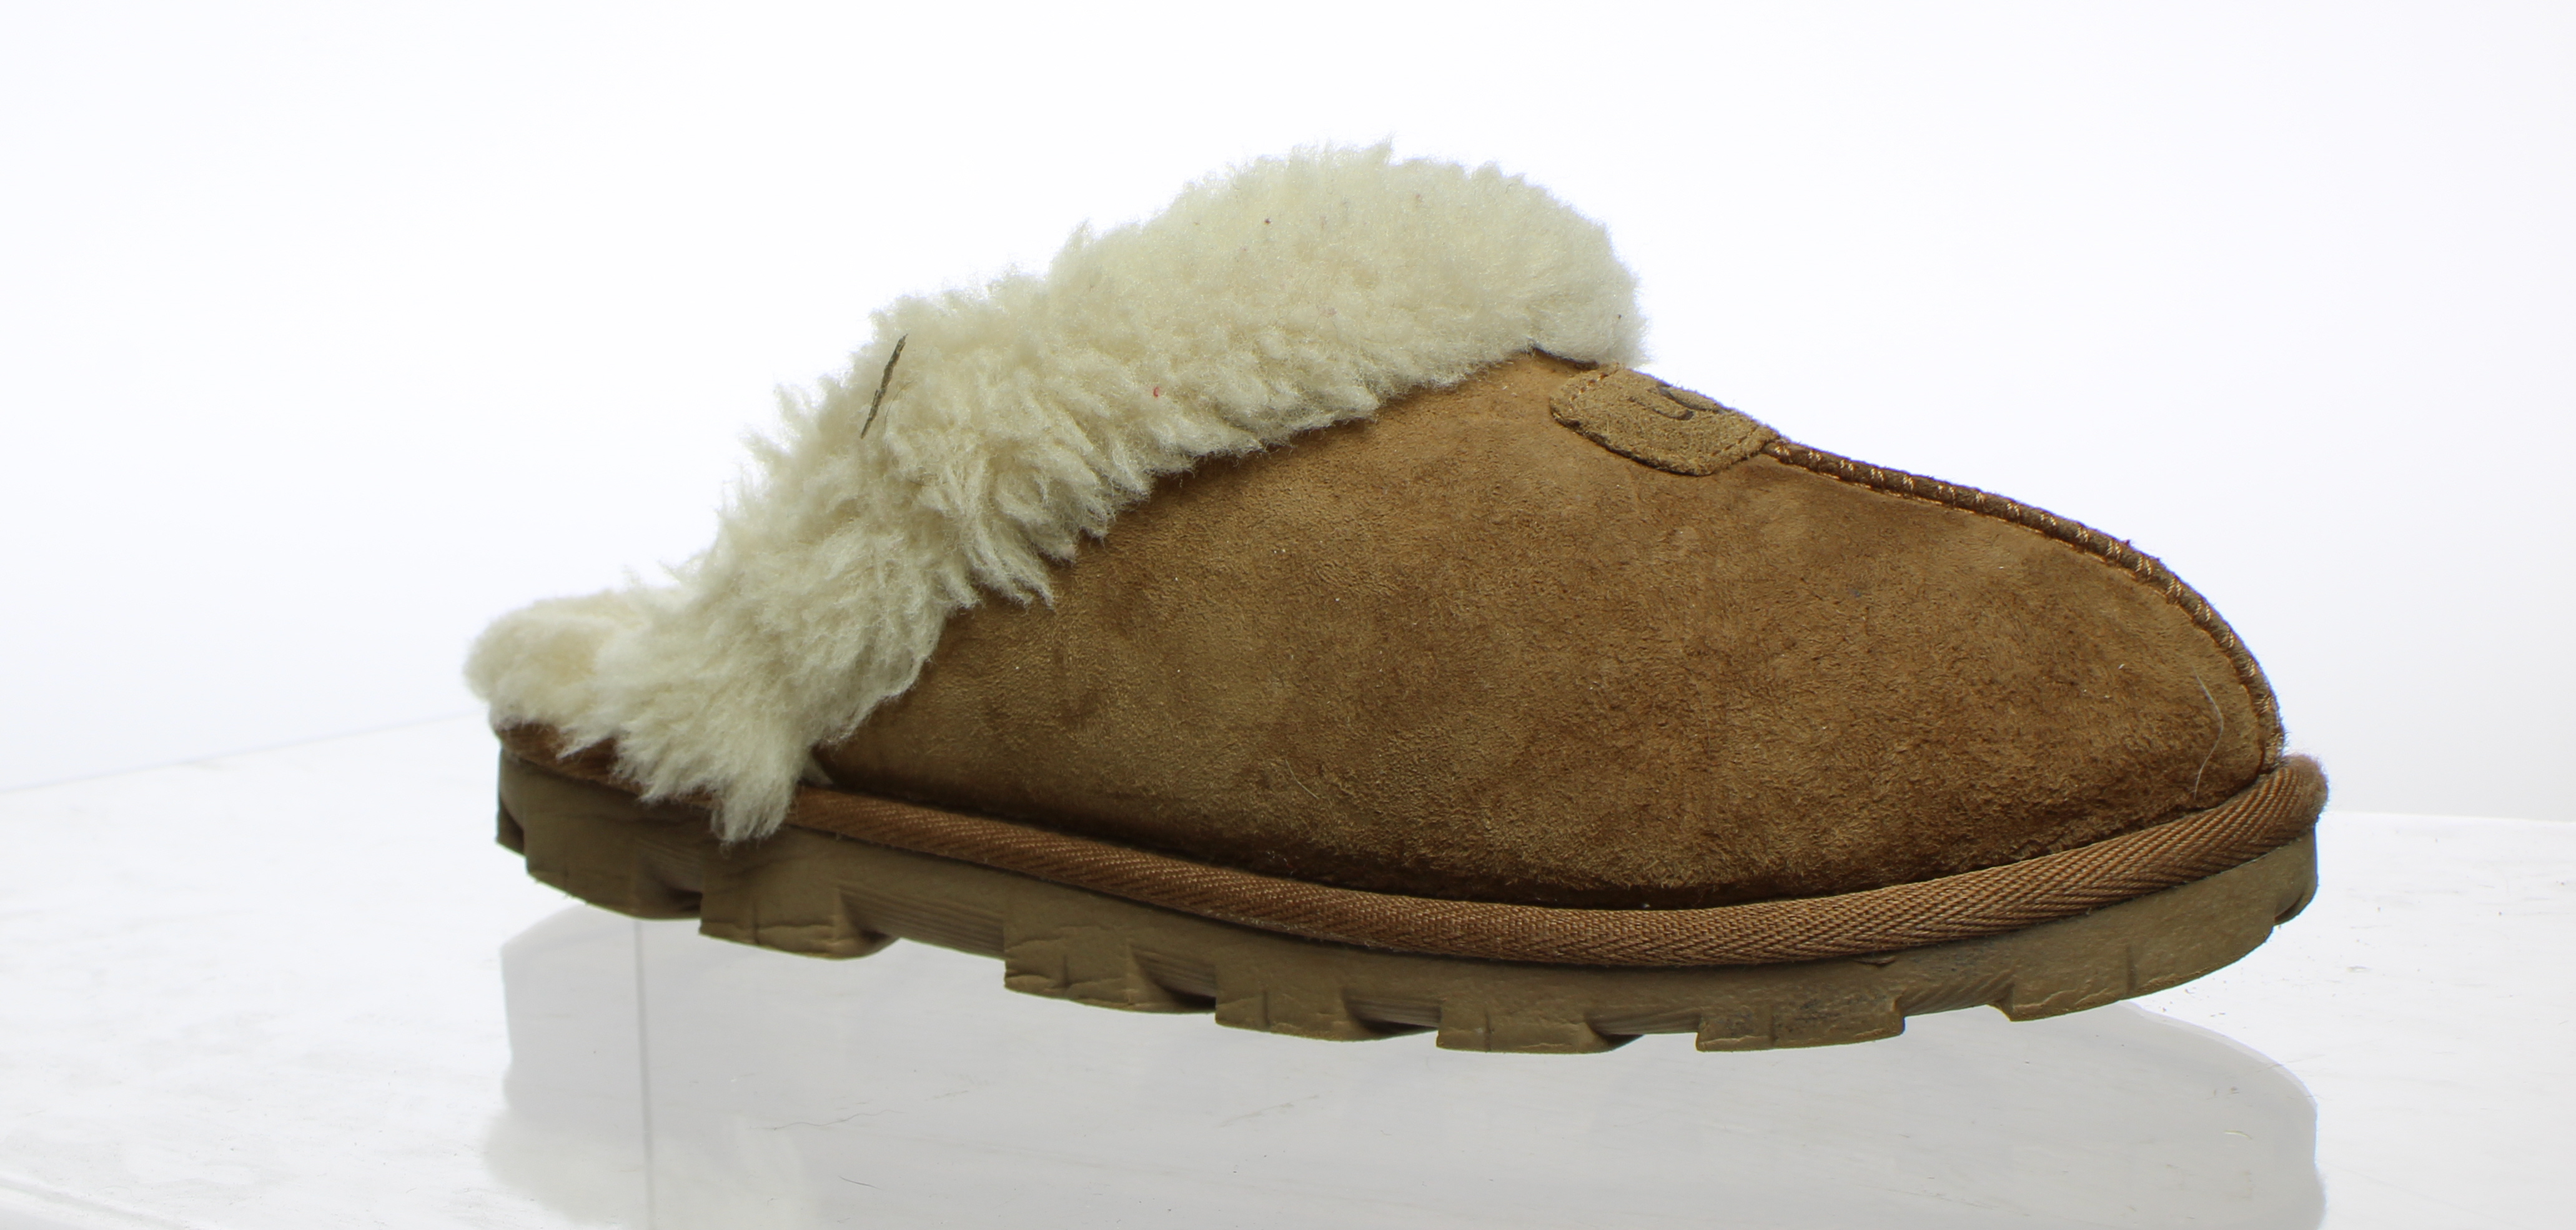 1fe9a7d3654 Details about UGG Womens Coquette Chestnut Mule Slippers Size 6 (318615)